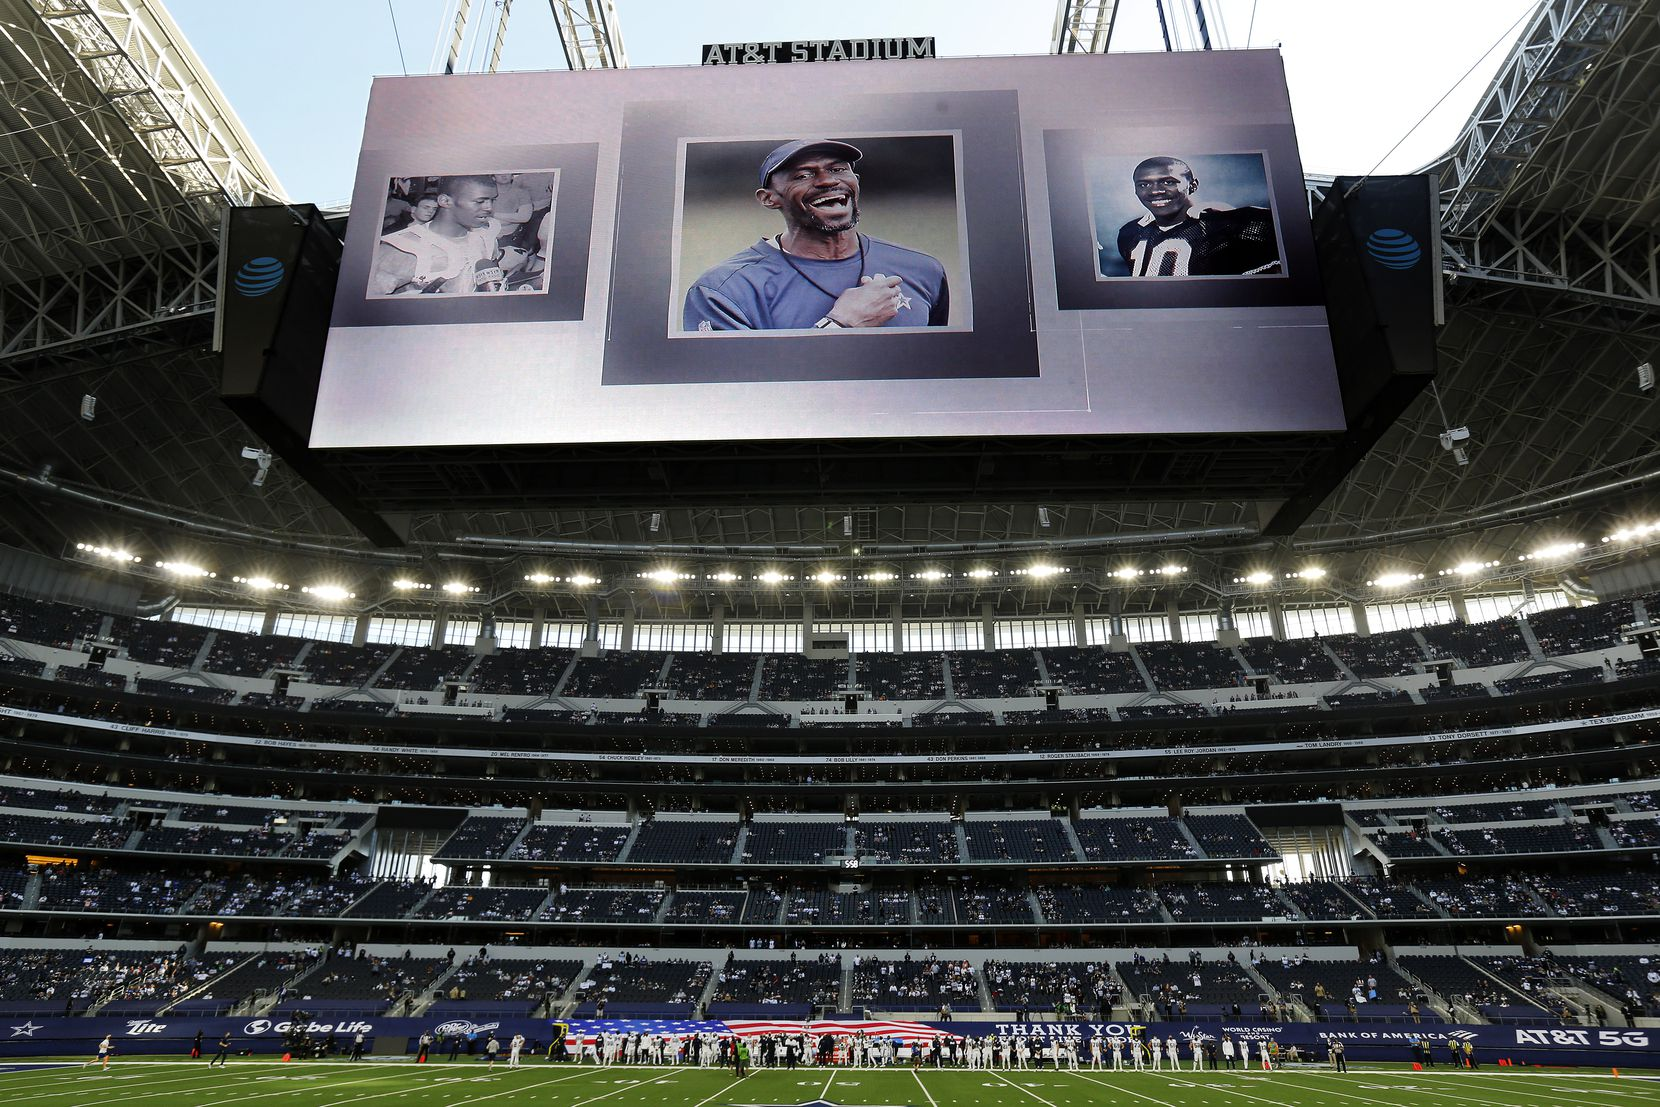 A moment of silence was held before the Washington Football Team game for Dallas Cowboys strength coach Markus Paul at AT&T Stadium in Arlington, Thursday, November 26, 2020. The Cowboys coach died suddenly this week.